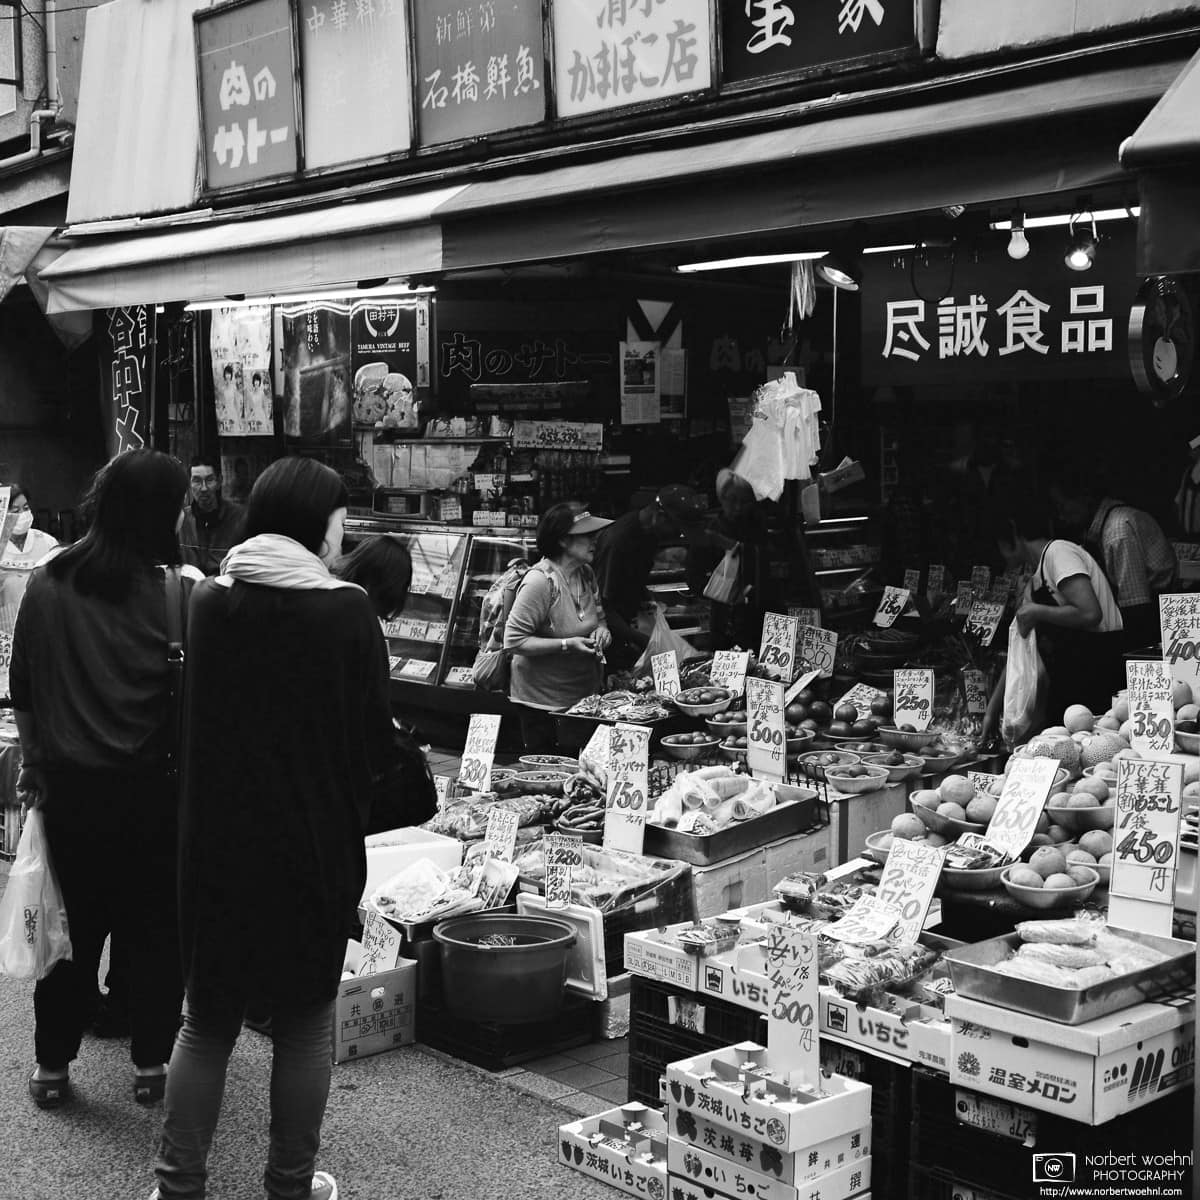 Daily business at a greengrocer in the old Yanaka Ginza shopping street in Tokyo, Japan.